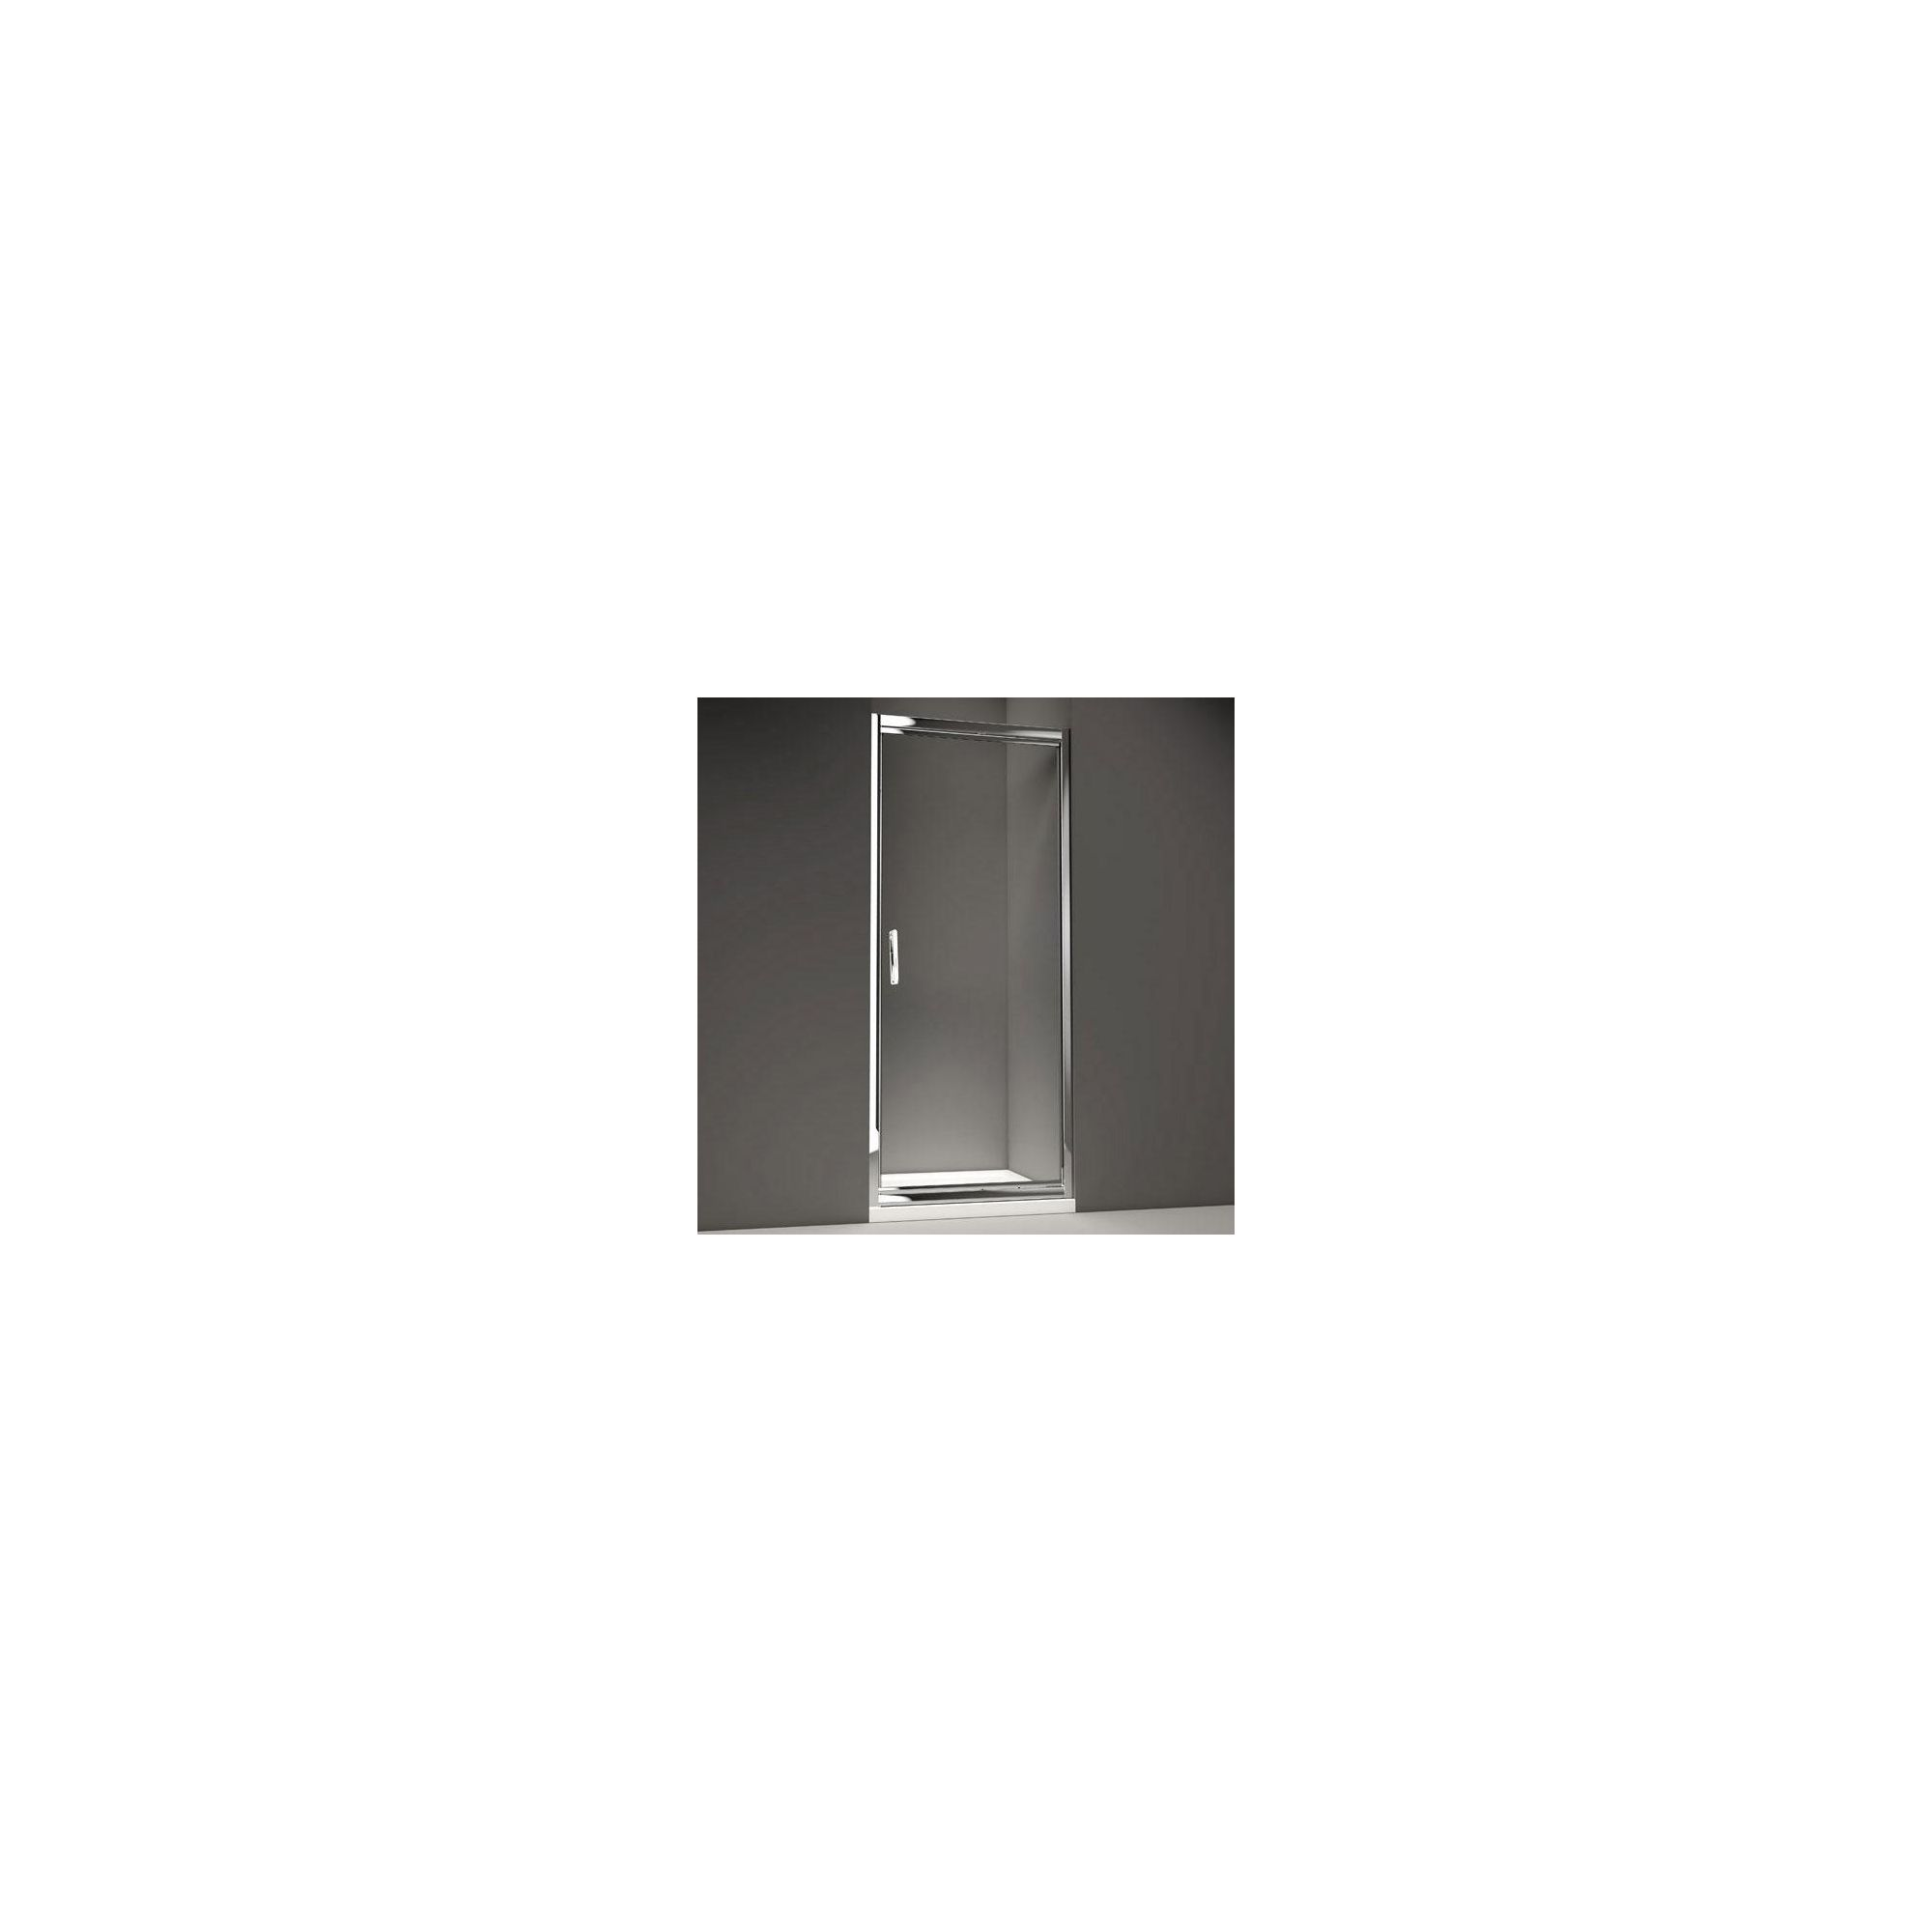 Merlyn Series 8 Infold Shower Door, 760mm Wide, Chrome Frame, 8mm Glass at Tesco Direct